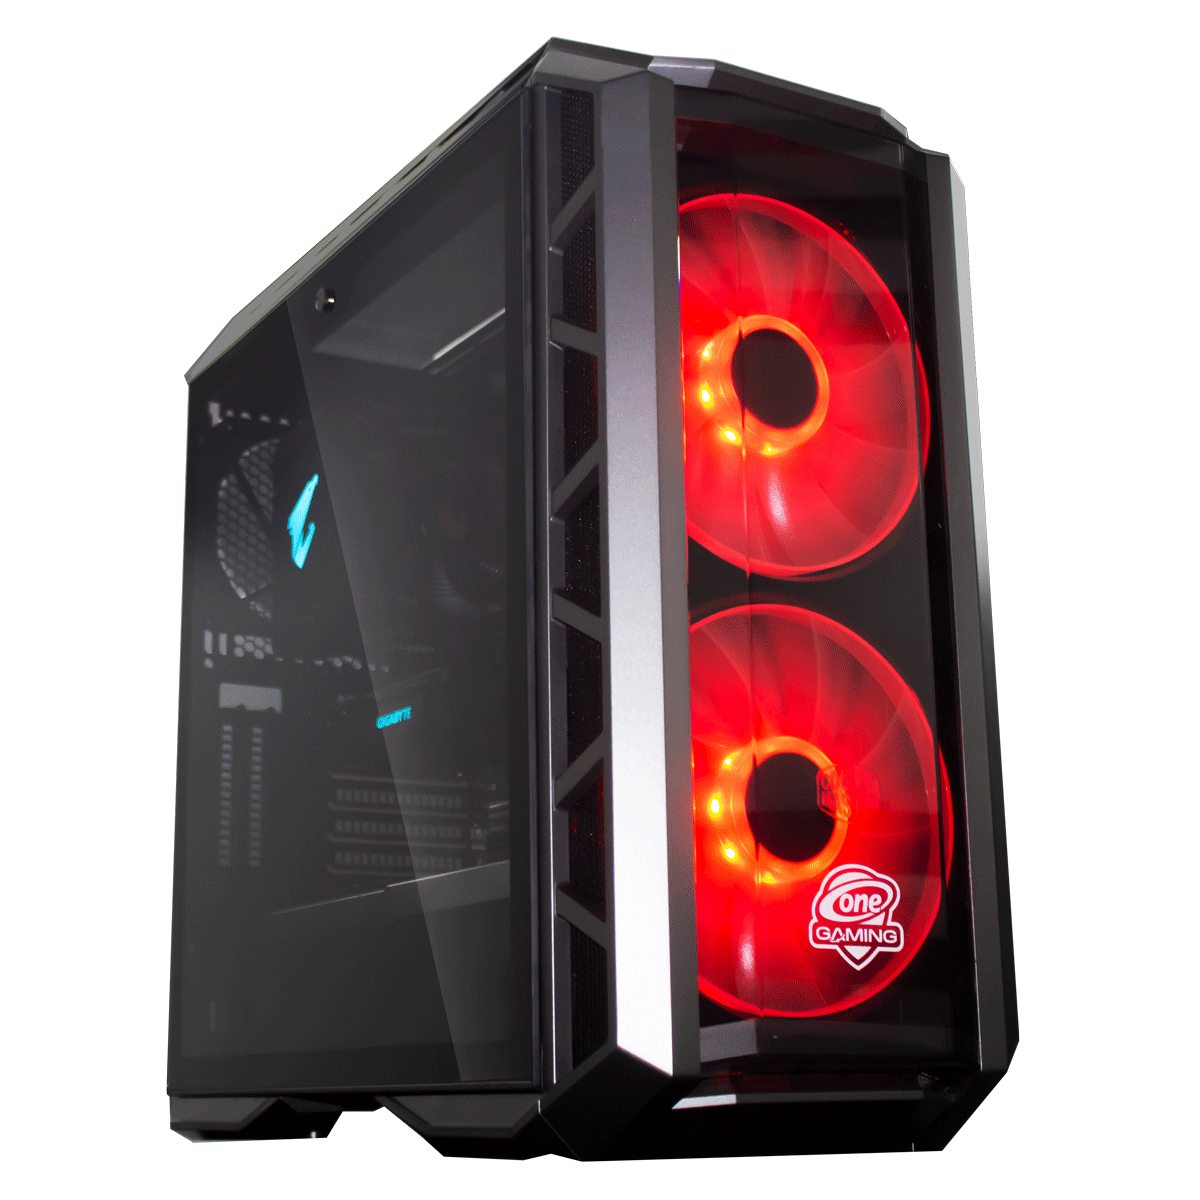 frei-konfigurierbarer-high-end-gaming-pc-one-gaming-ultra-an06